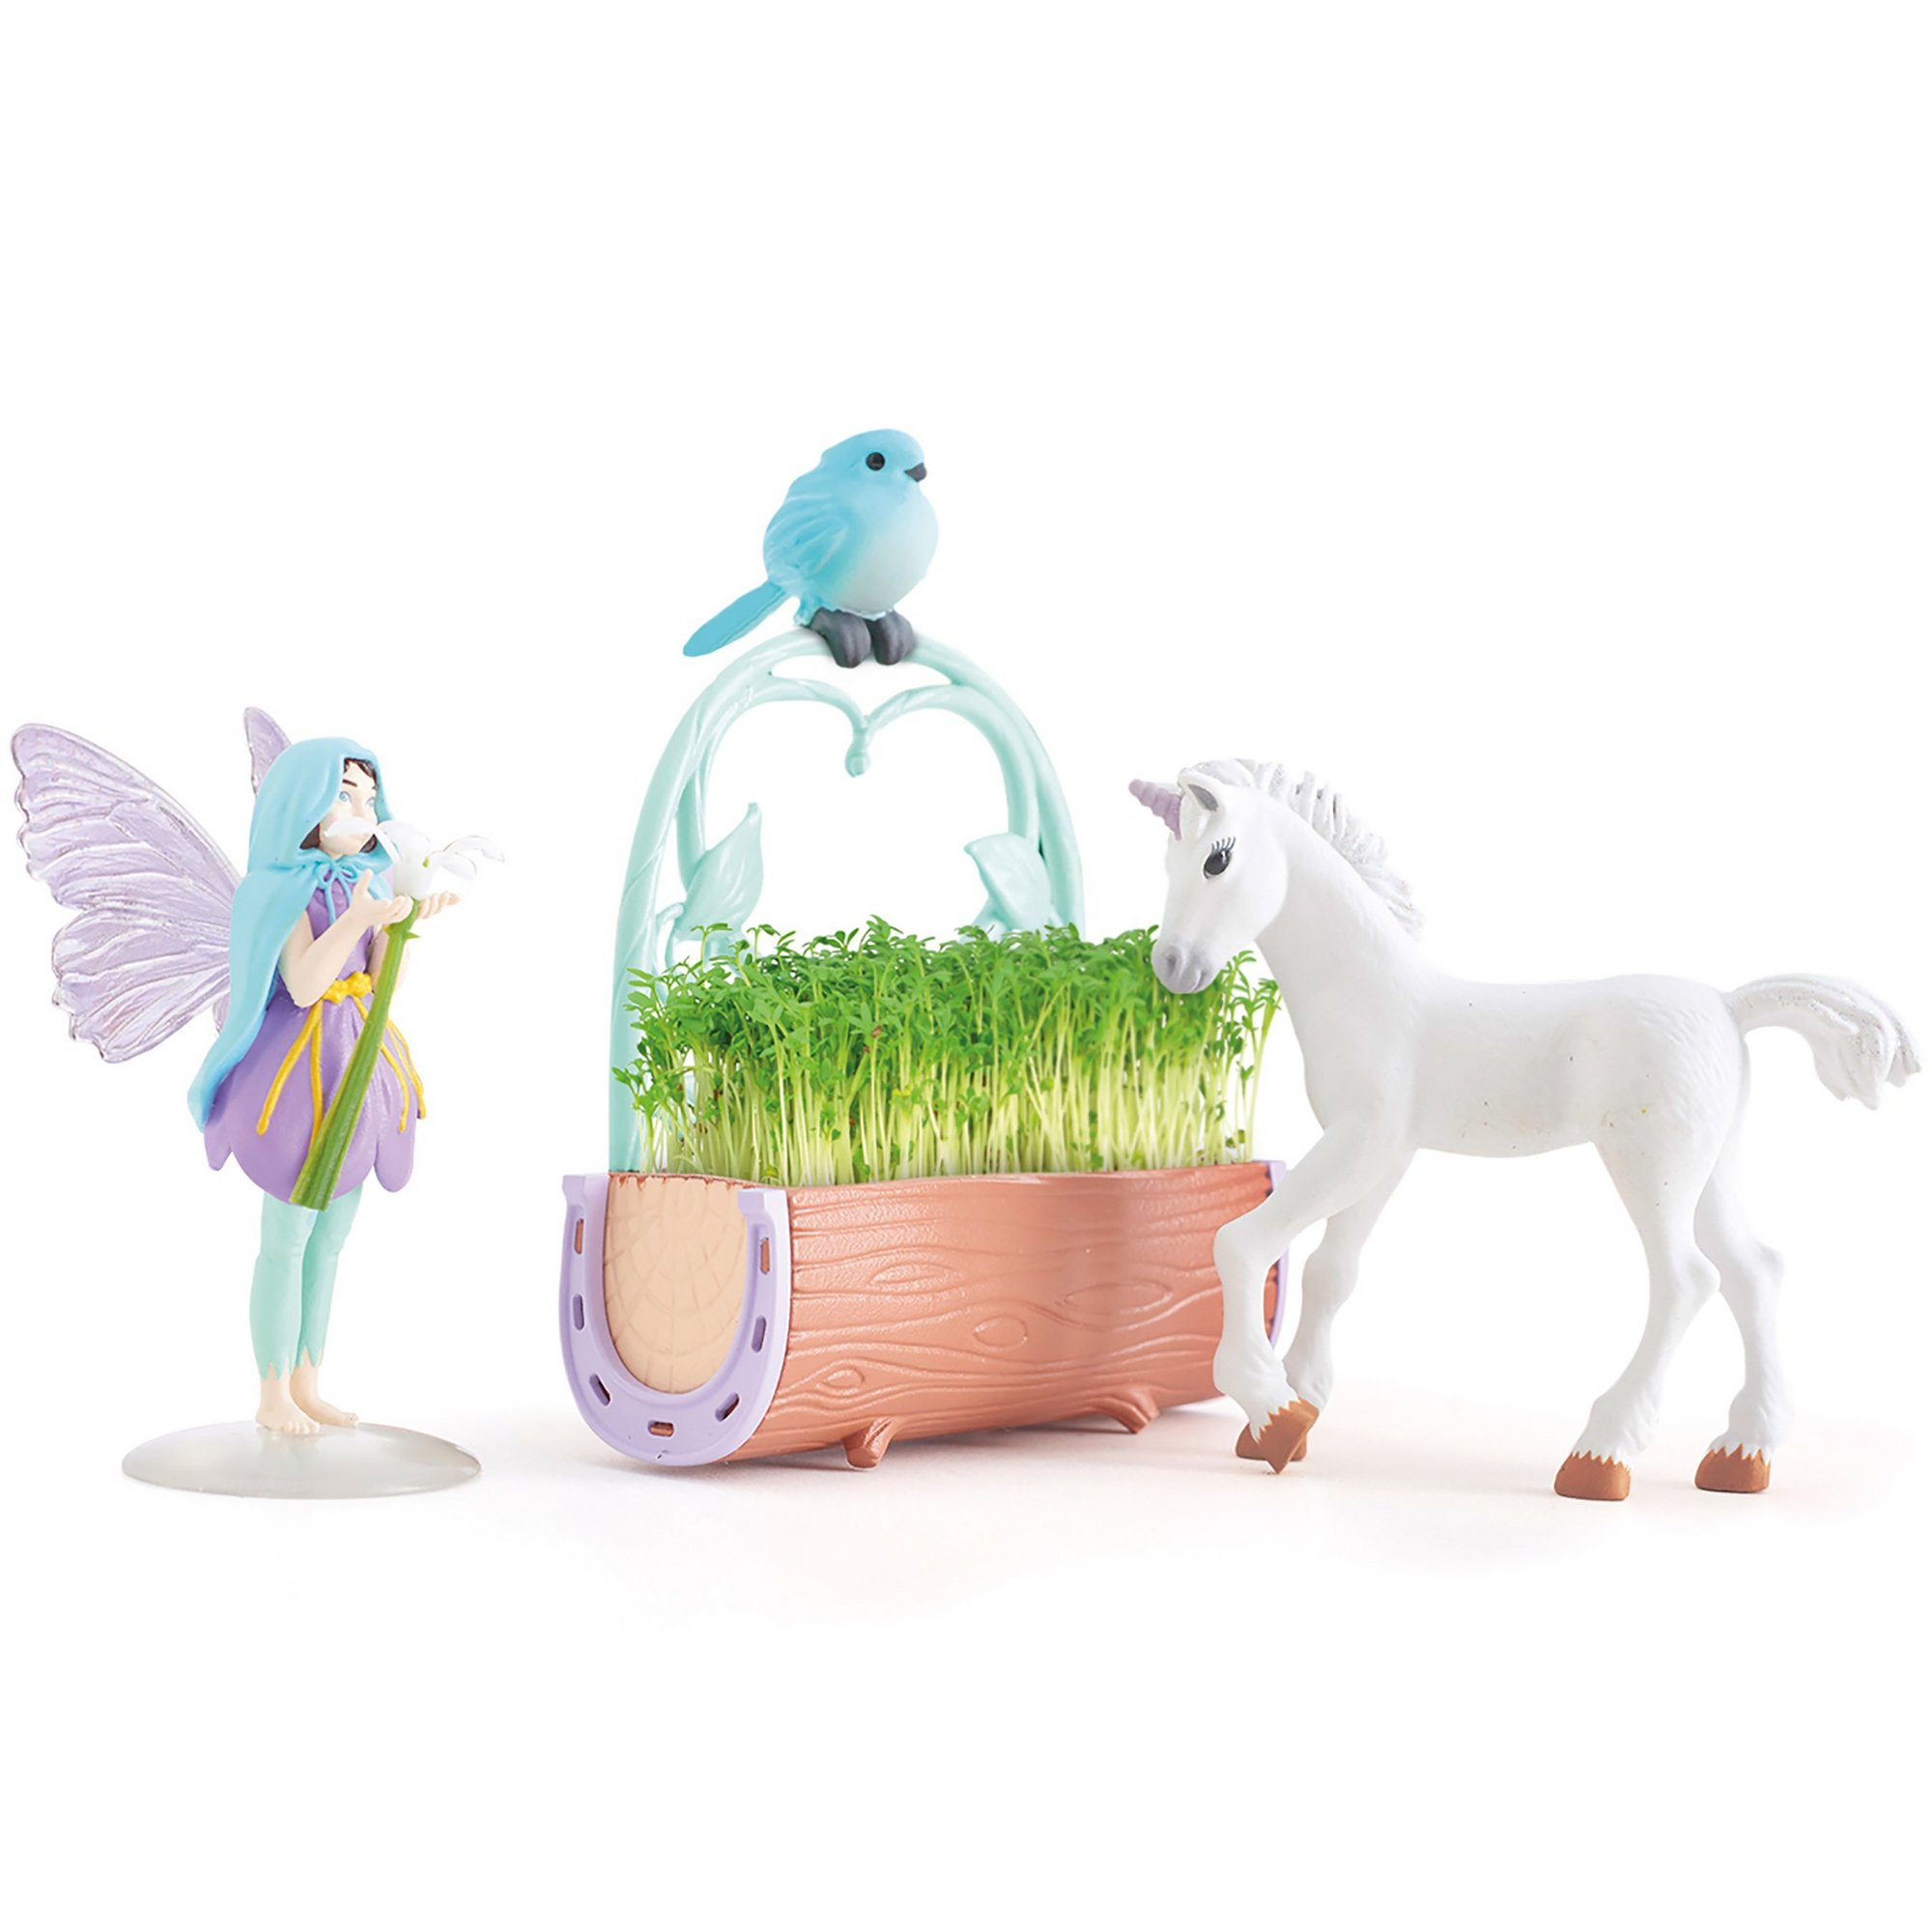 Image of My Fairy Garden Unicorn and Friends